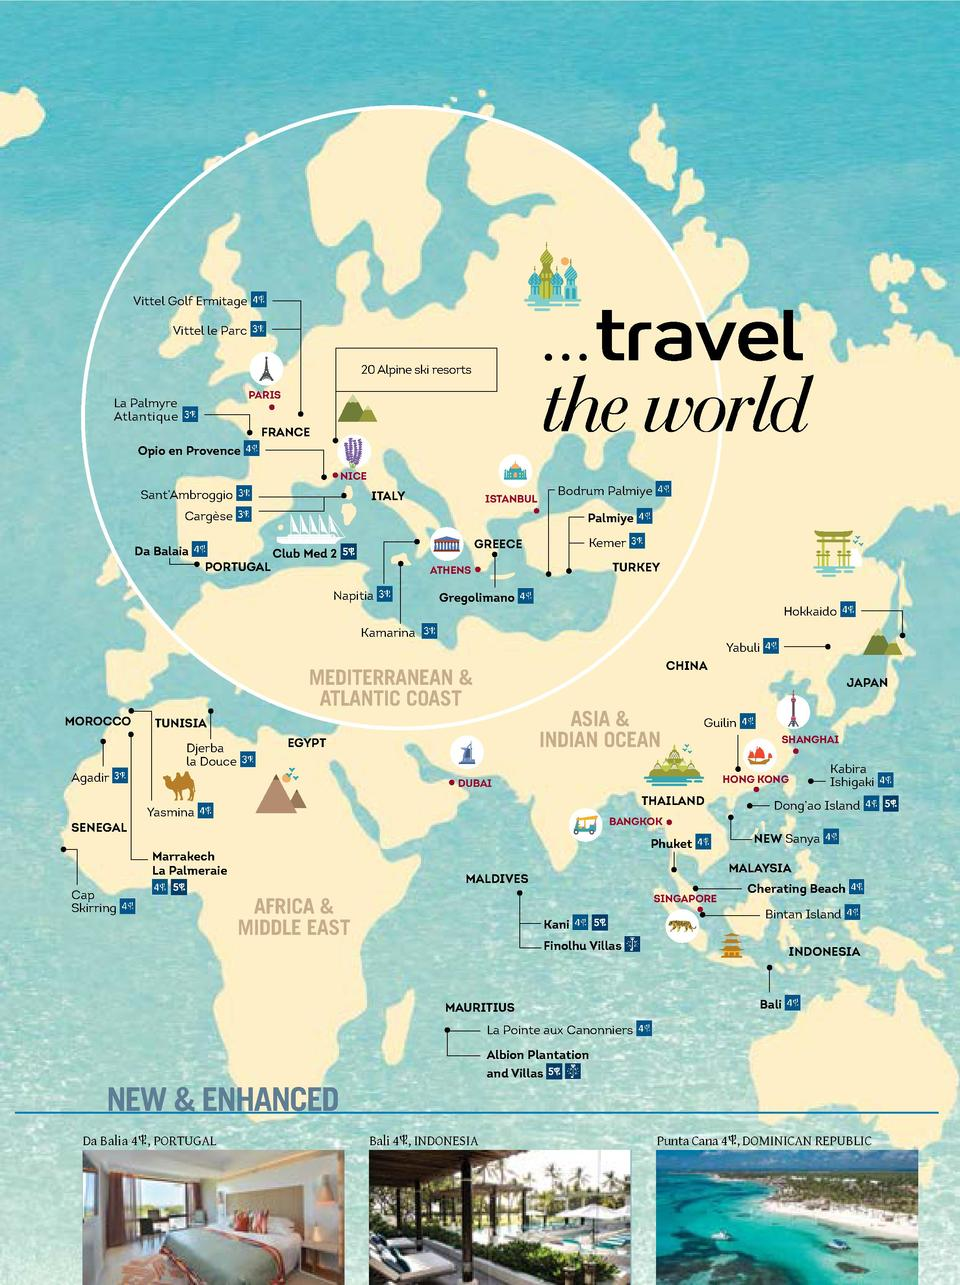 ...travel the world  Vittel Golf Ermitage Vittel le Parc 20 Alpine ski resorts PARIS  La Palmyre Atlantique  FRANCE Opio e...